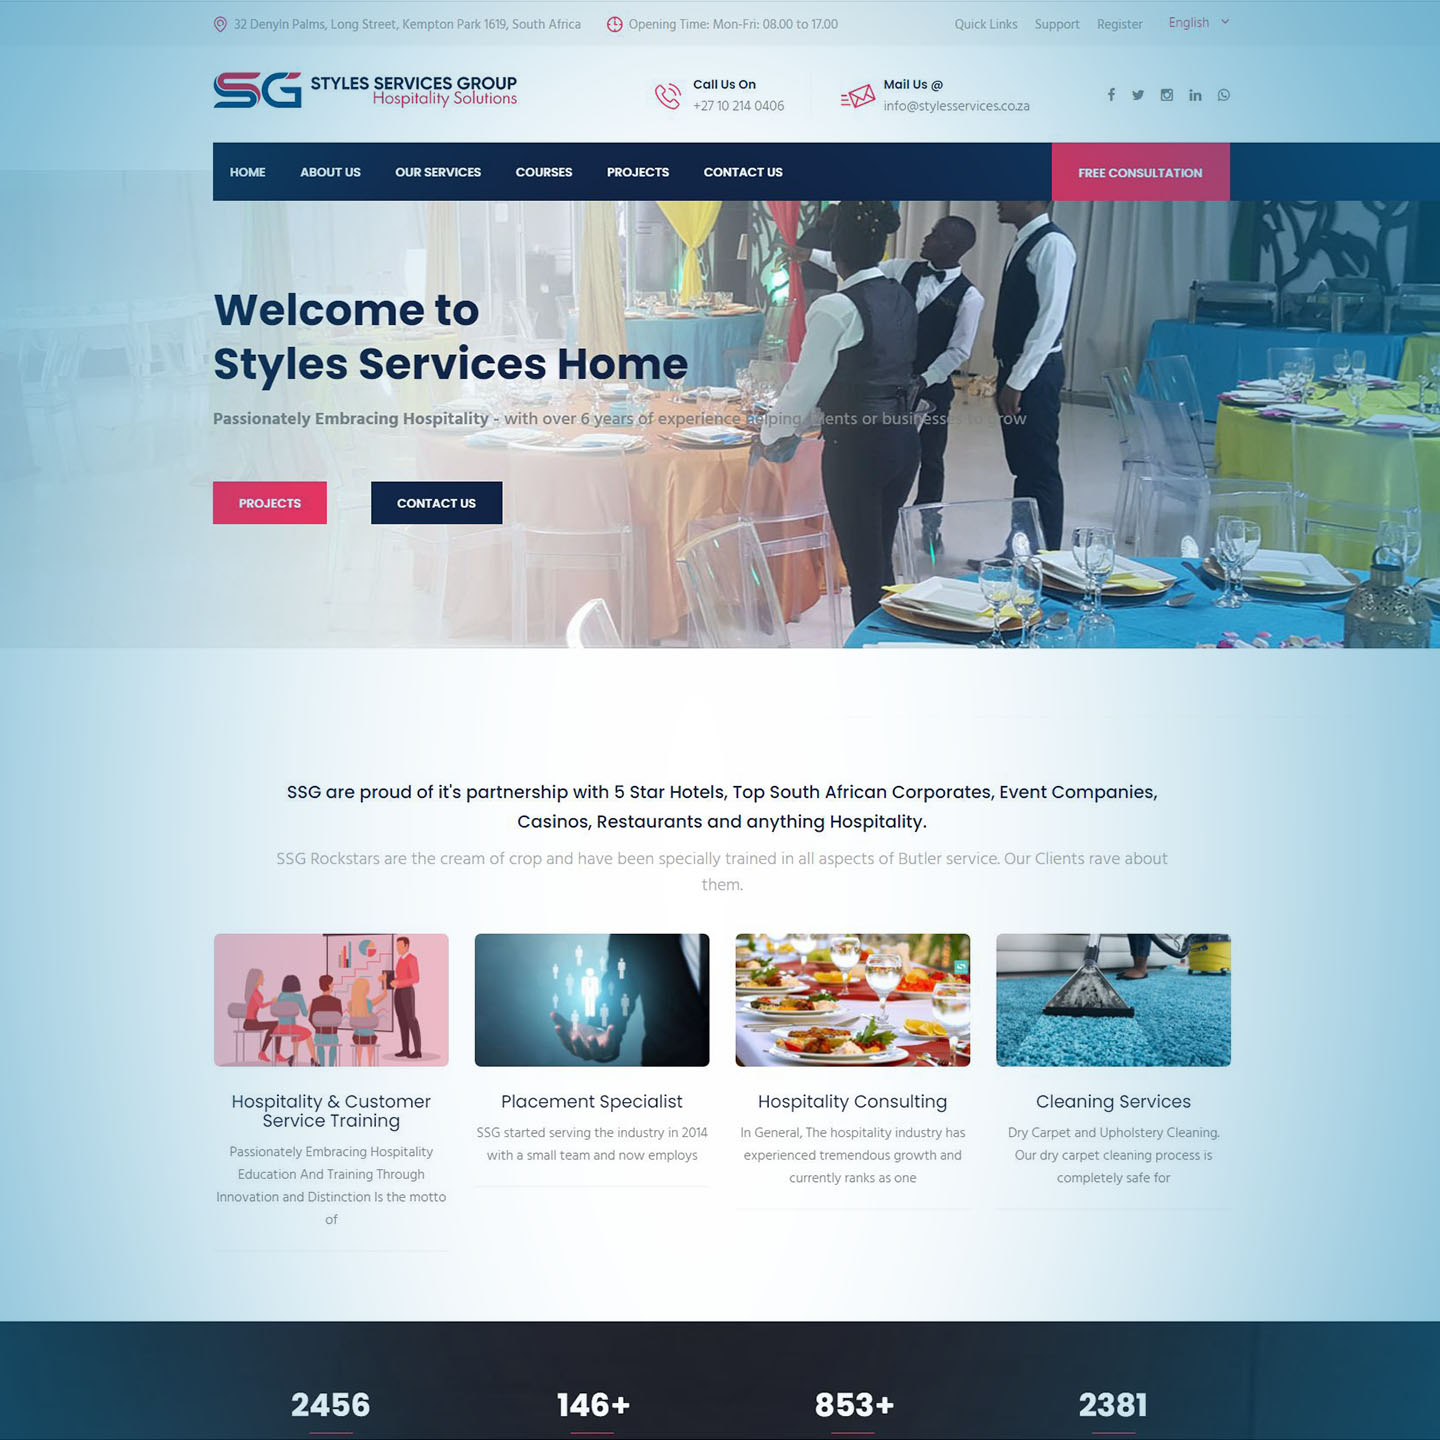 Styles Services Group Website